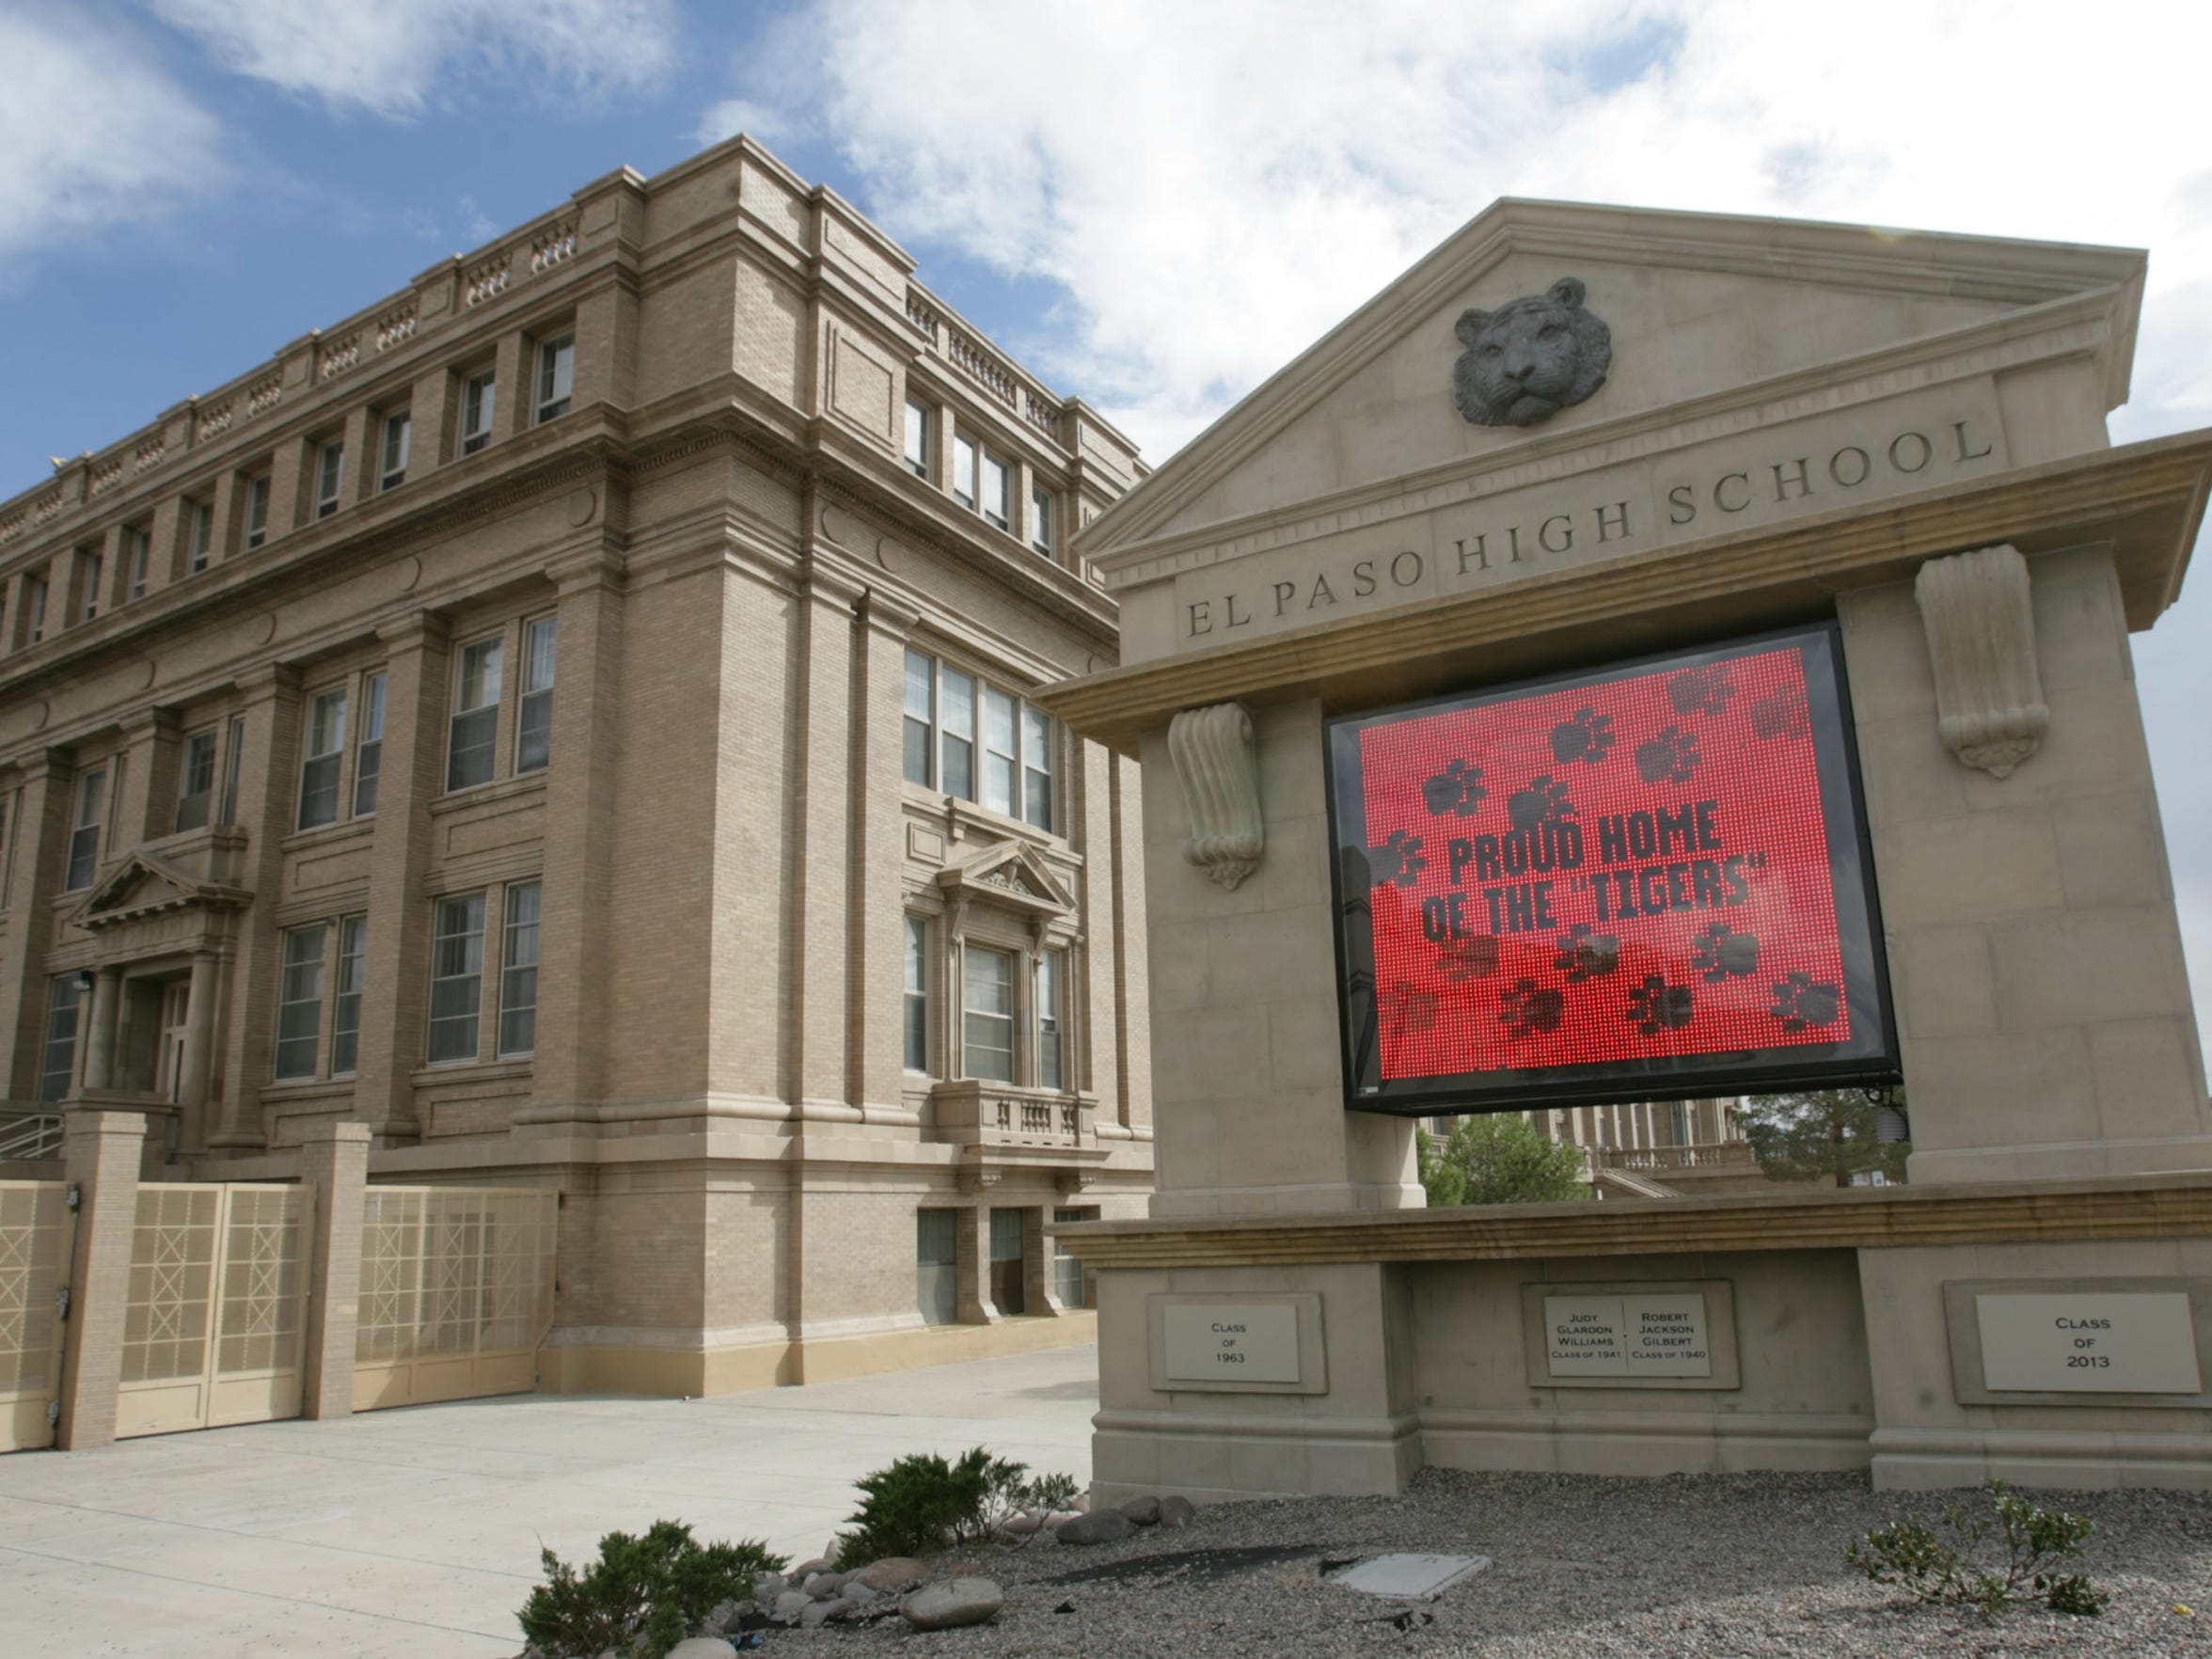 El Paso High School will benefit from $20 million in improvements and undergo an architectural historic survey.